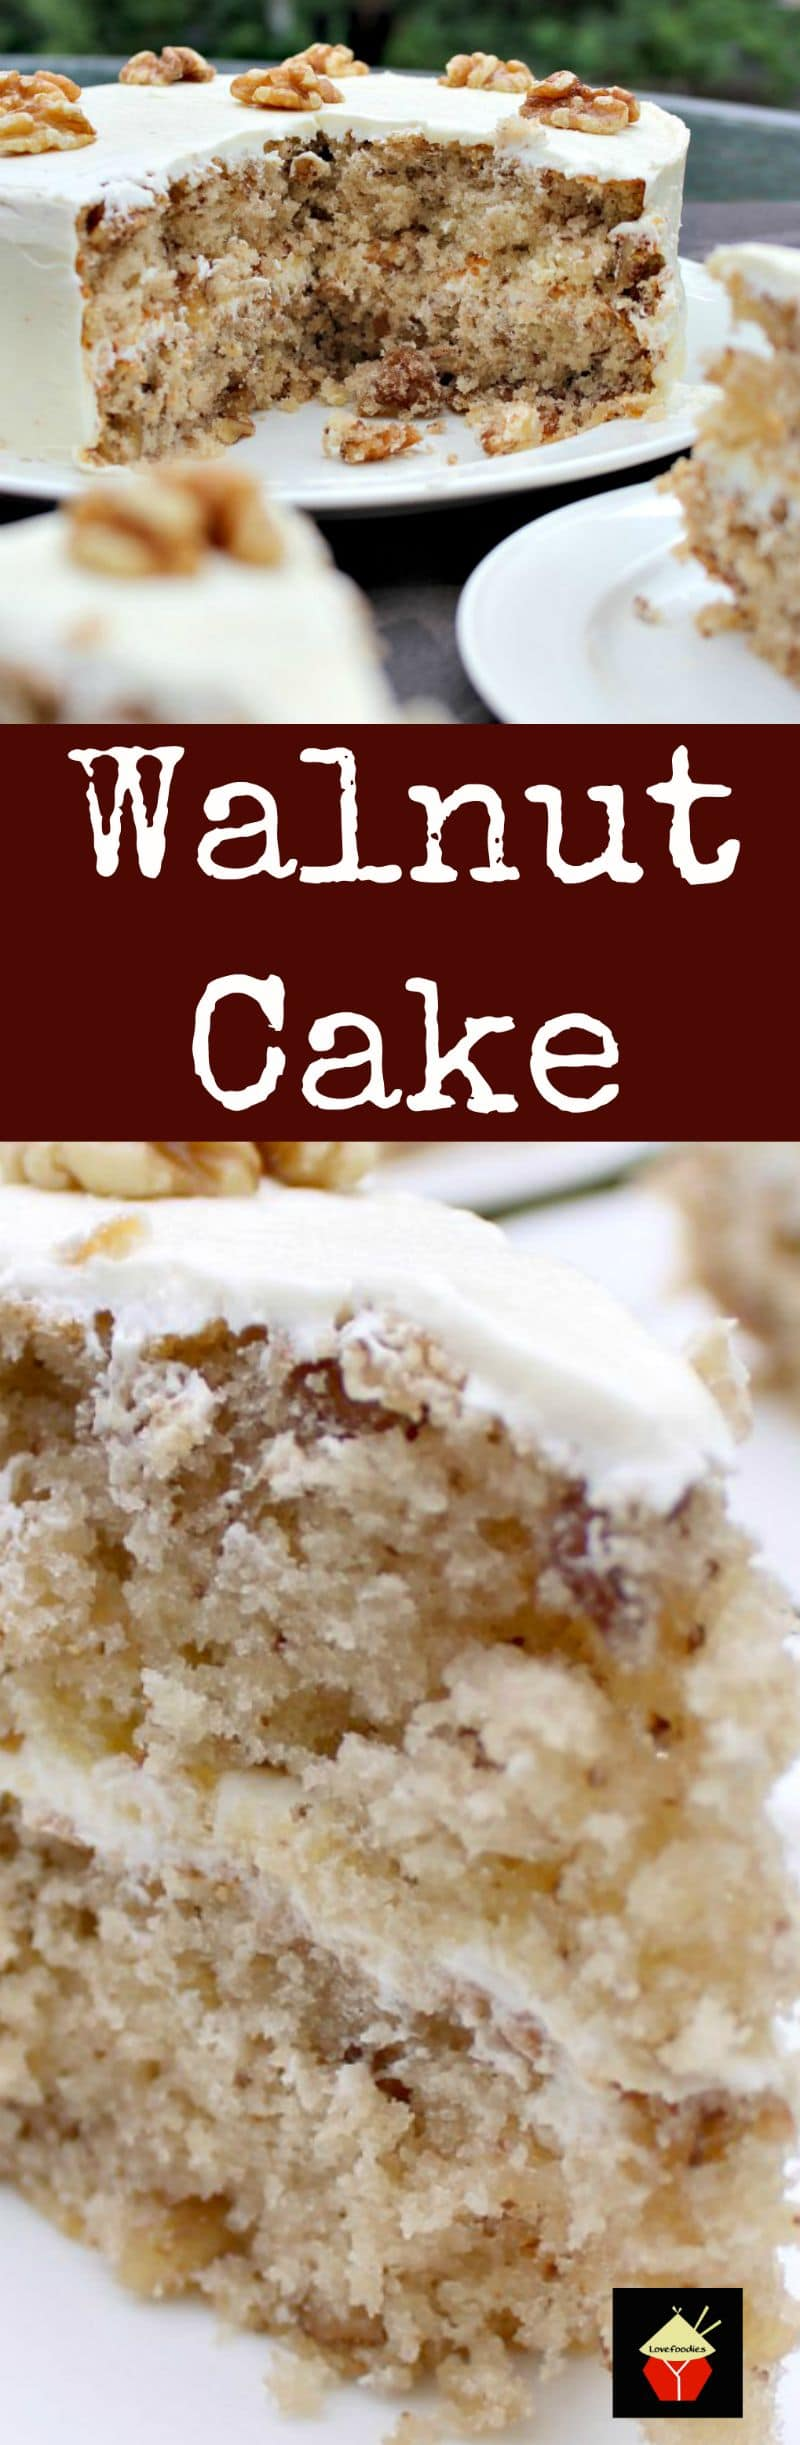 Walnut Cake is a delicious easy recipe. the cake is so soft and fluffy! Recipe also for a lovely vanilla frosting. You can make this as a round cake or a loaf, instructions for both. Freezer friendly too. This would also make a nice cake for the holidays!